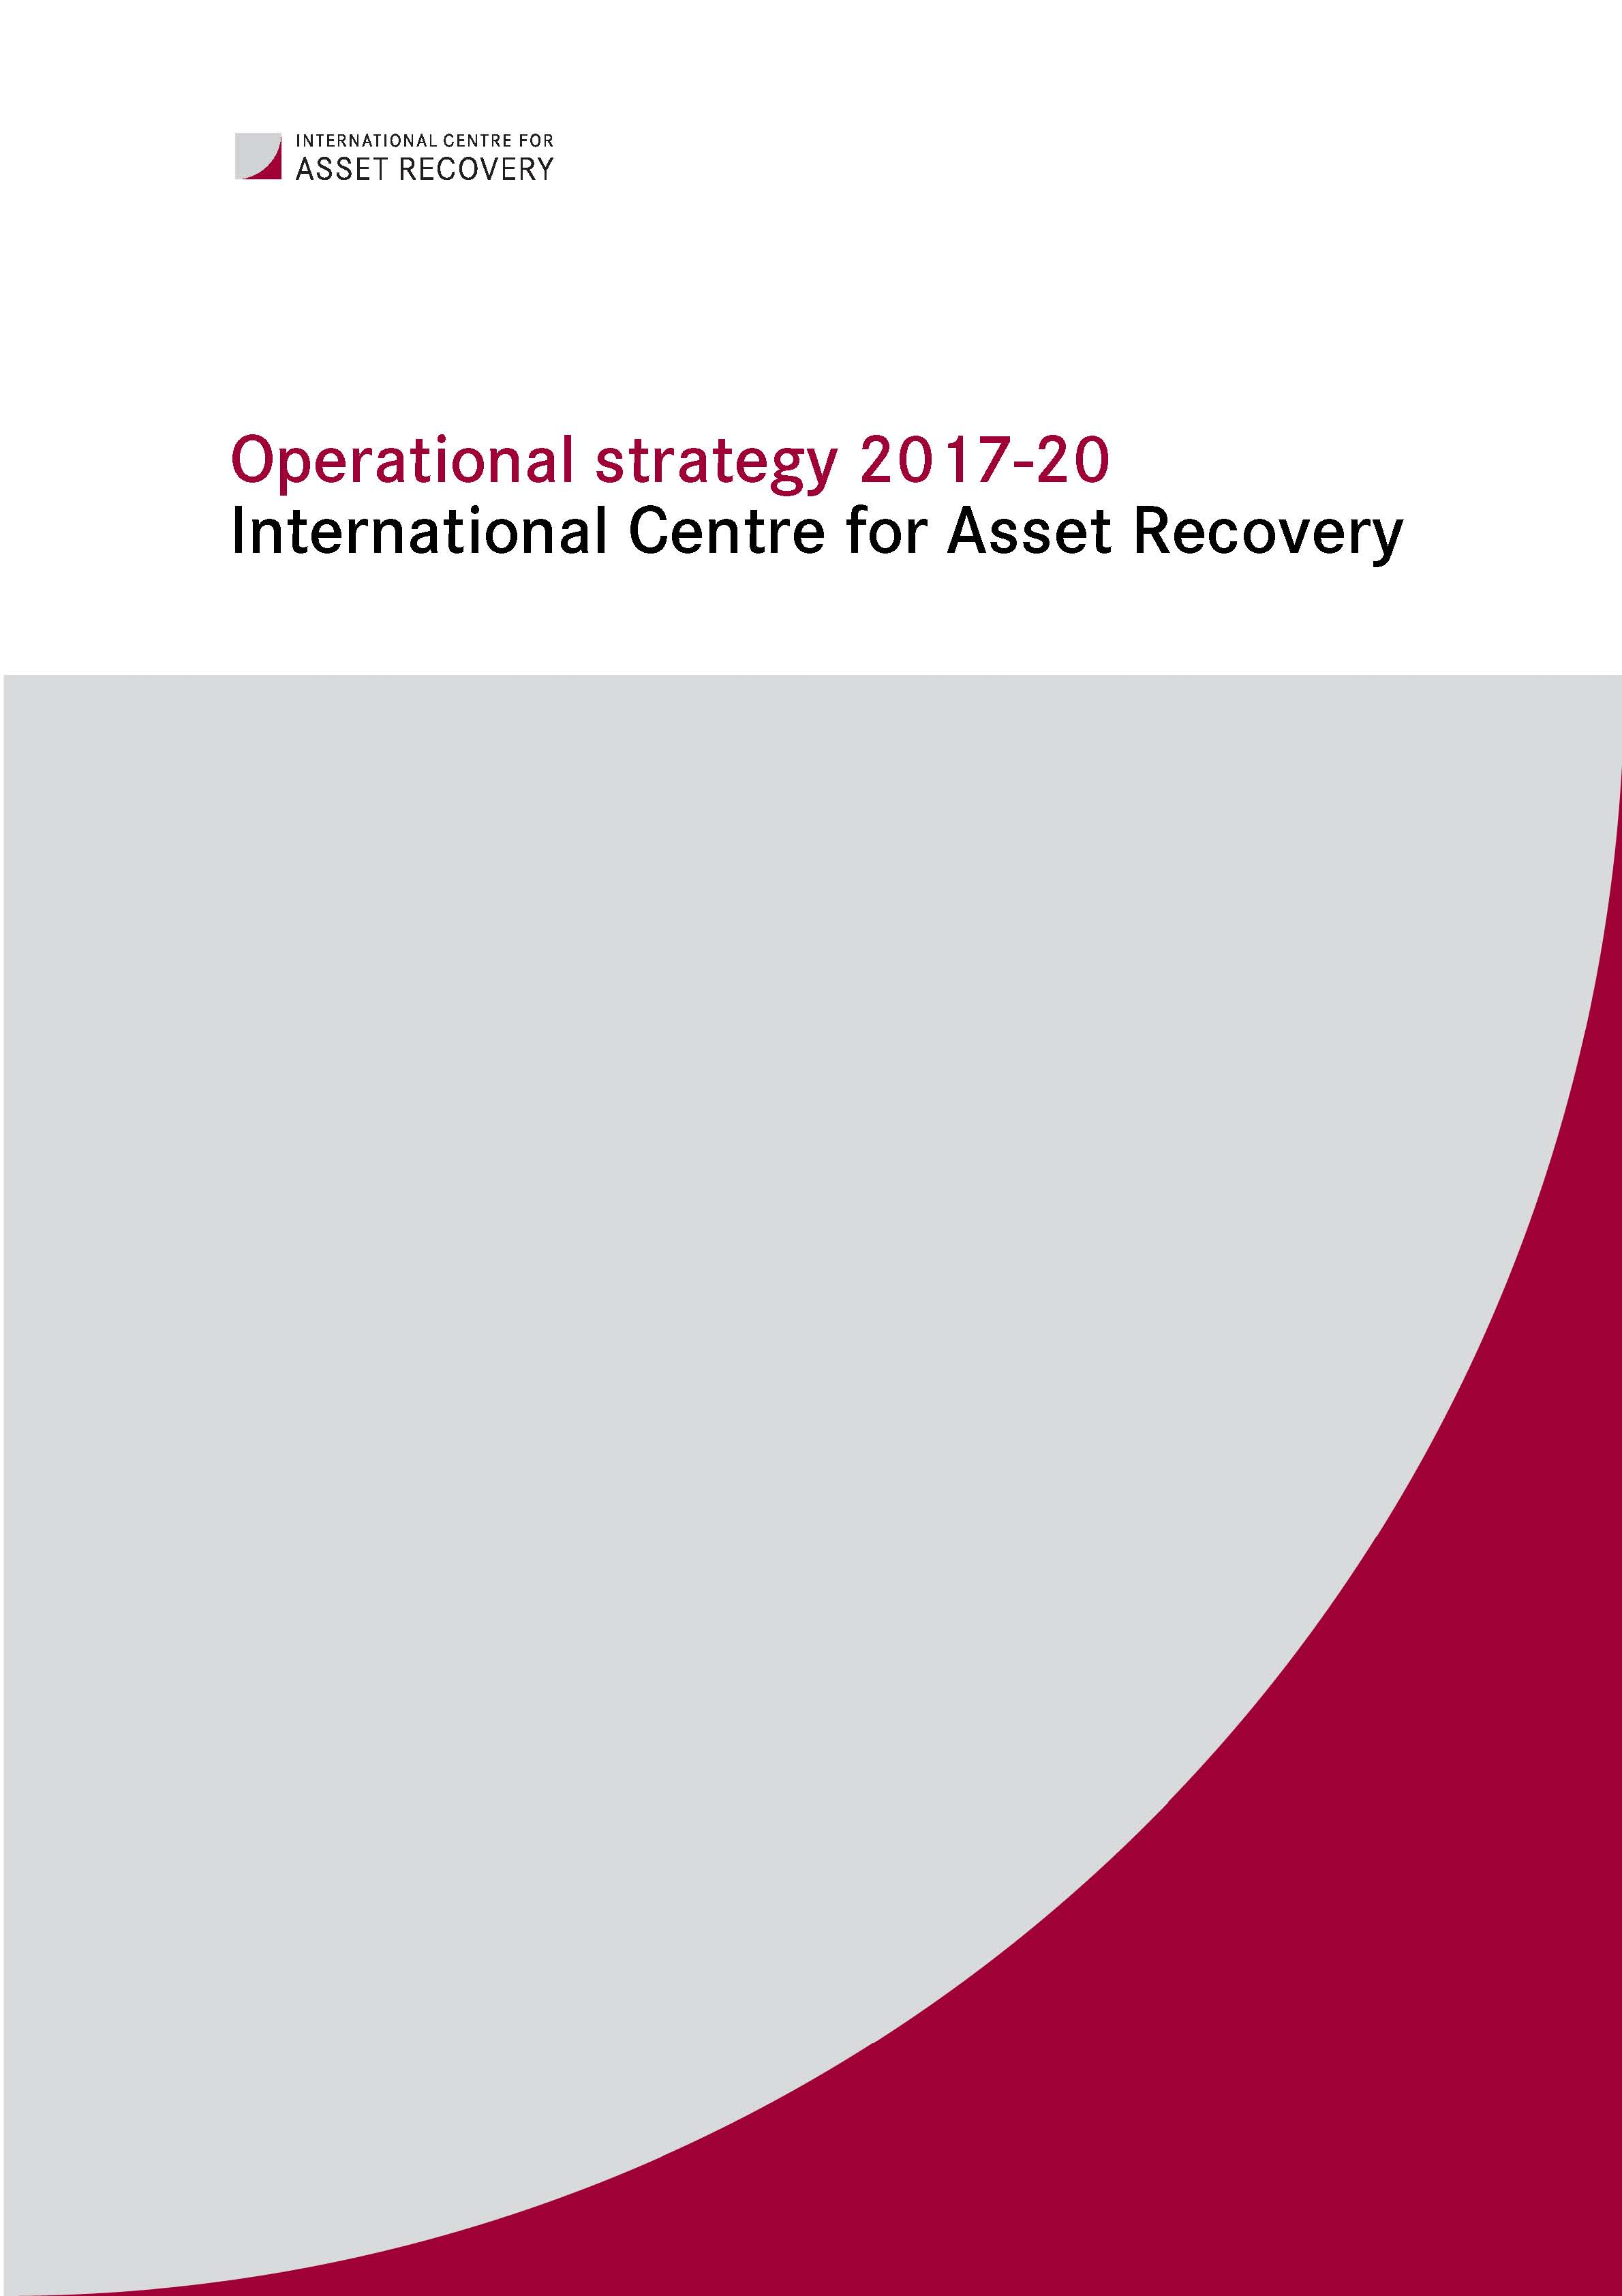 ICAR Operational Strategy 2017-2010